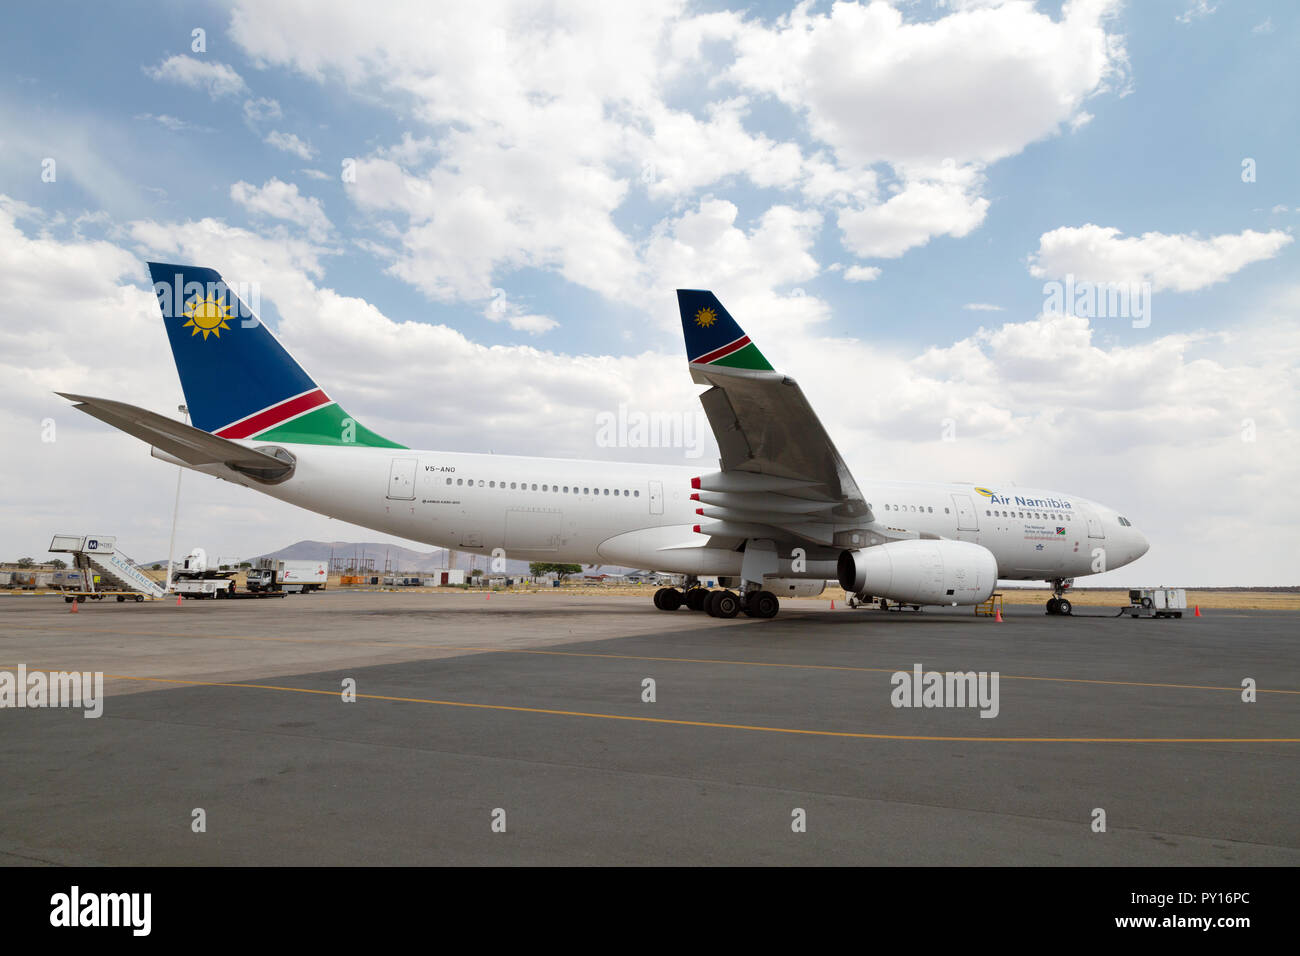 An Air Namibia plane on the ground at Hosea Kutako International Airport, Windhoek, Namibia Africa - Stock Image